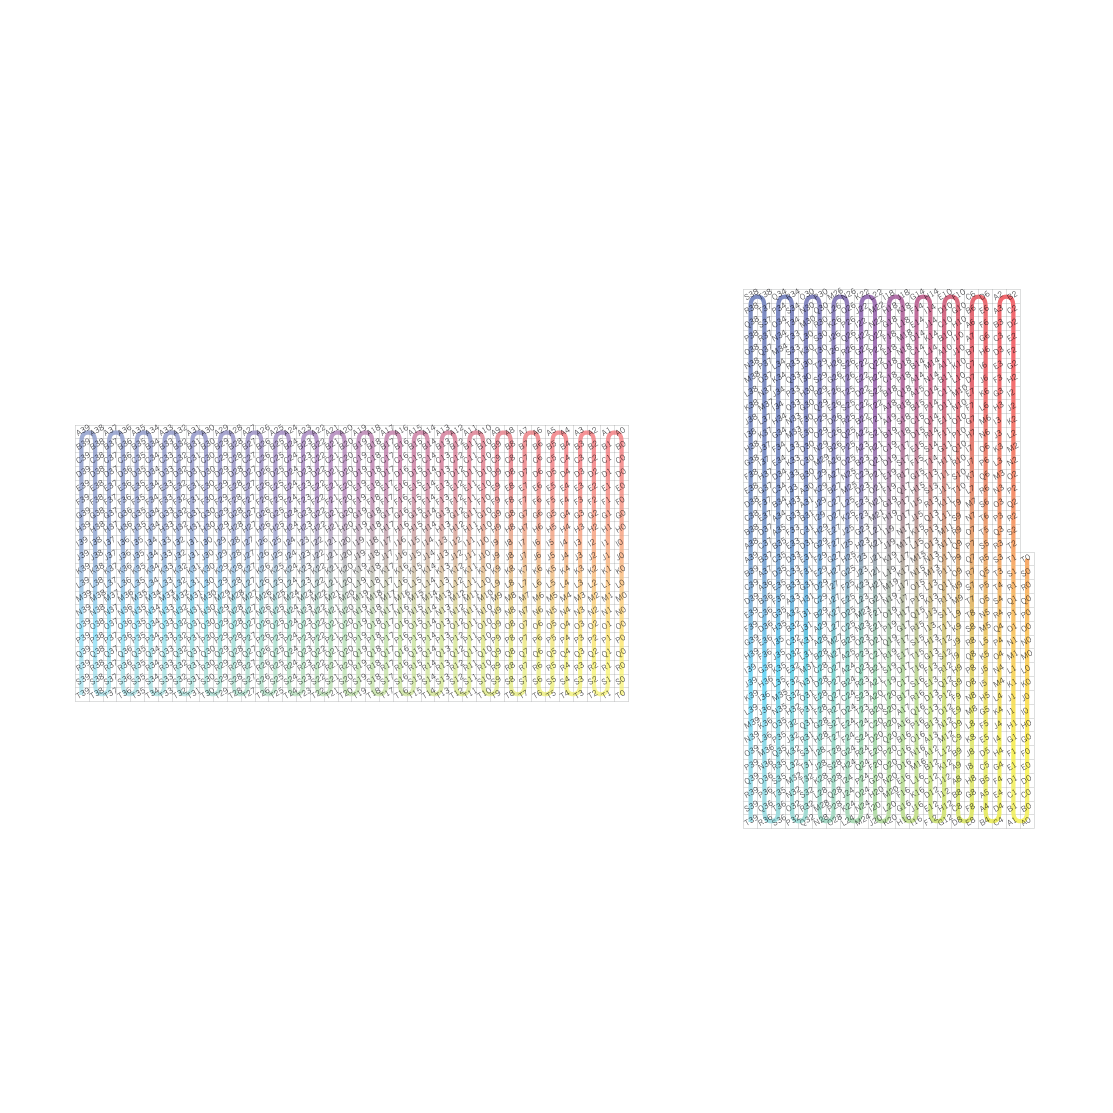 pixel shift new labels [Converted].png